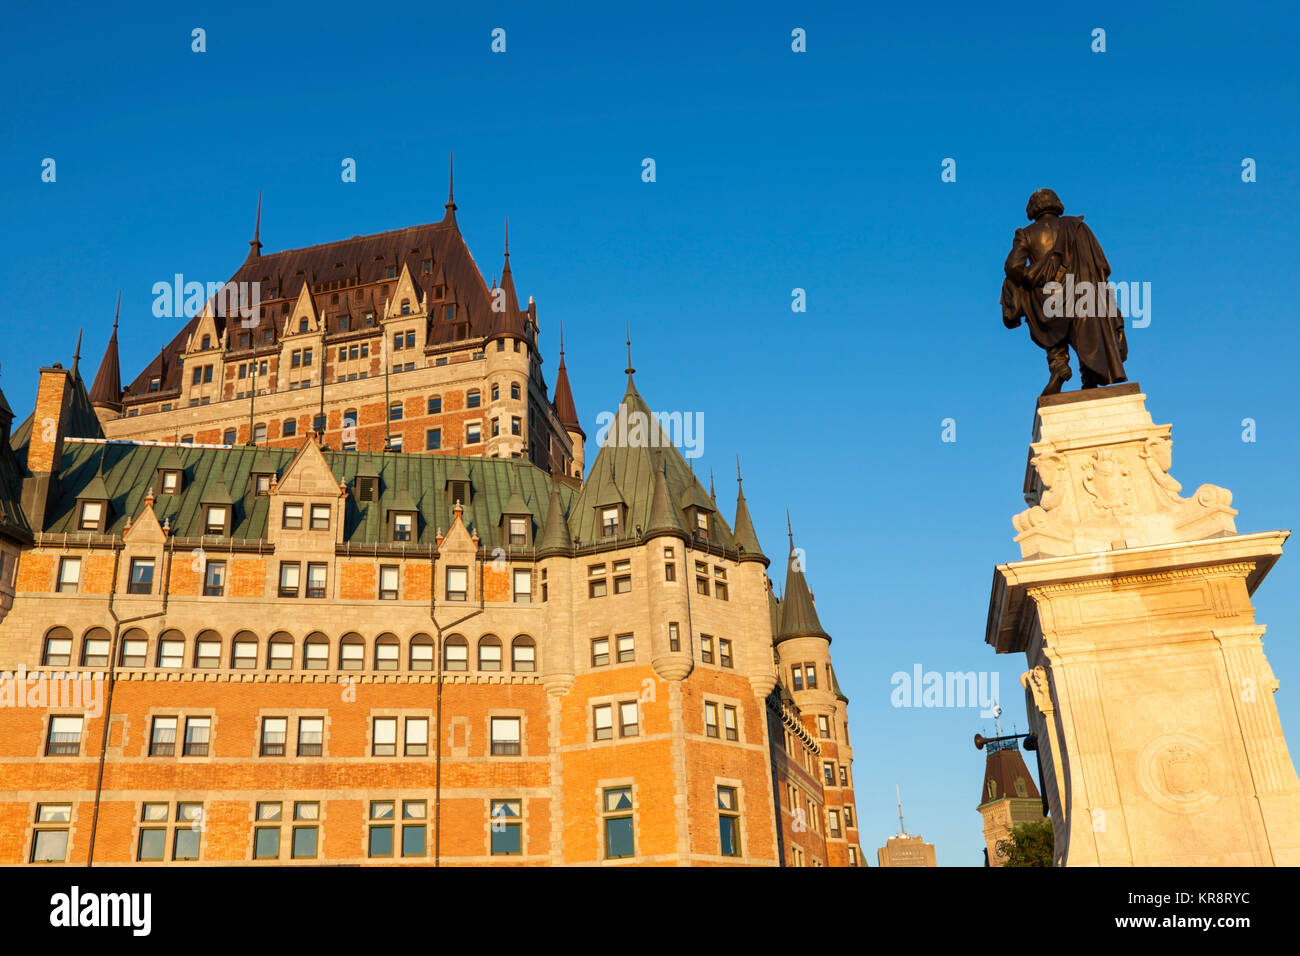 Canada, Quebec, Quebec City, Old architecture with statue - Stock Image